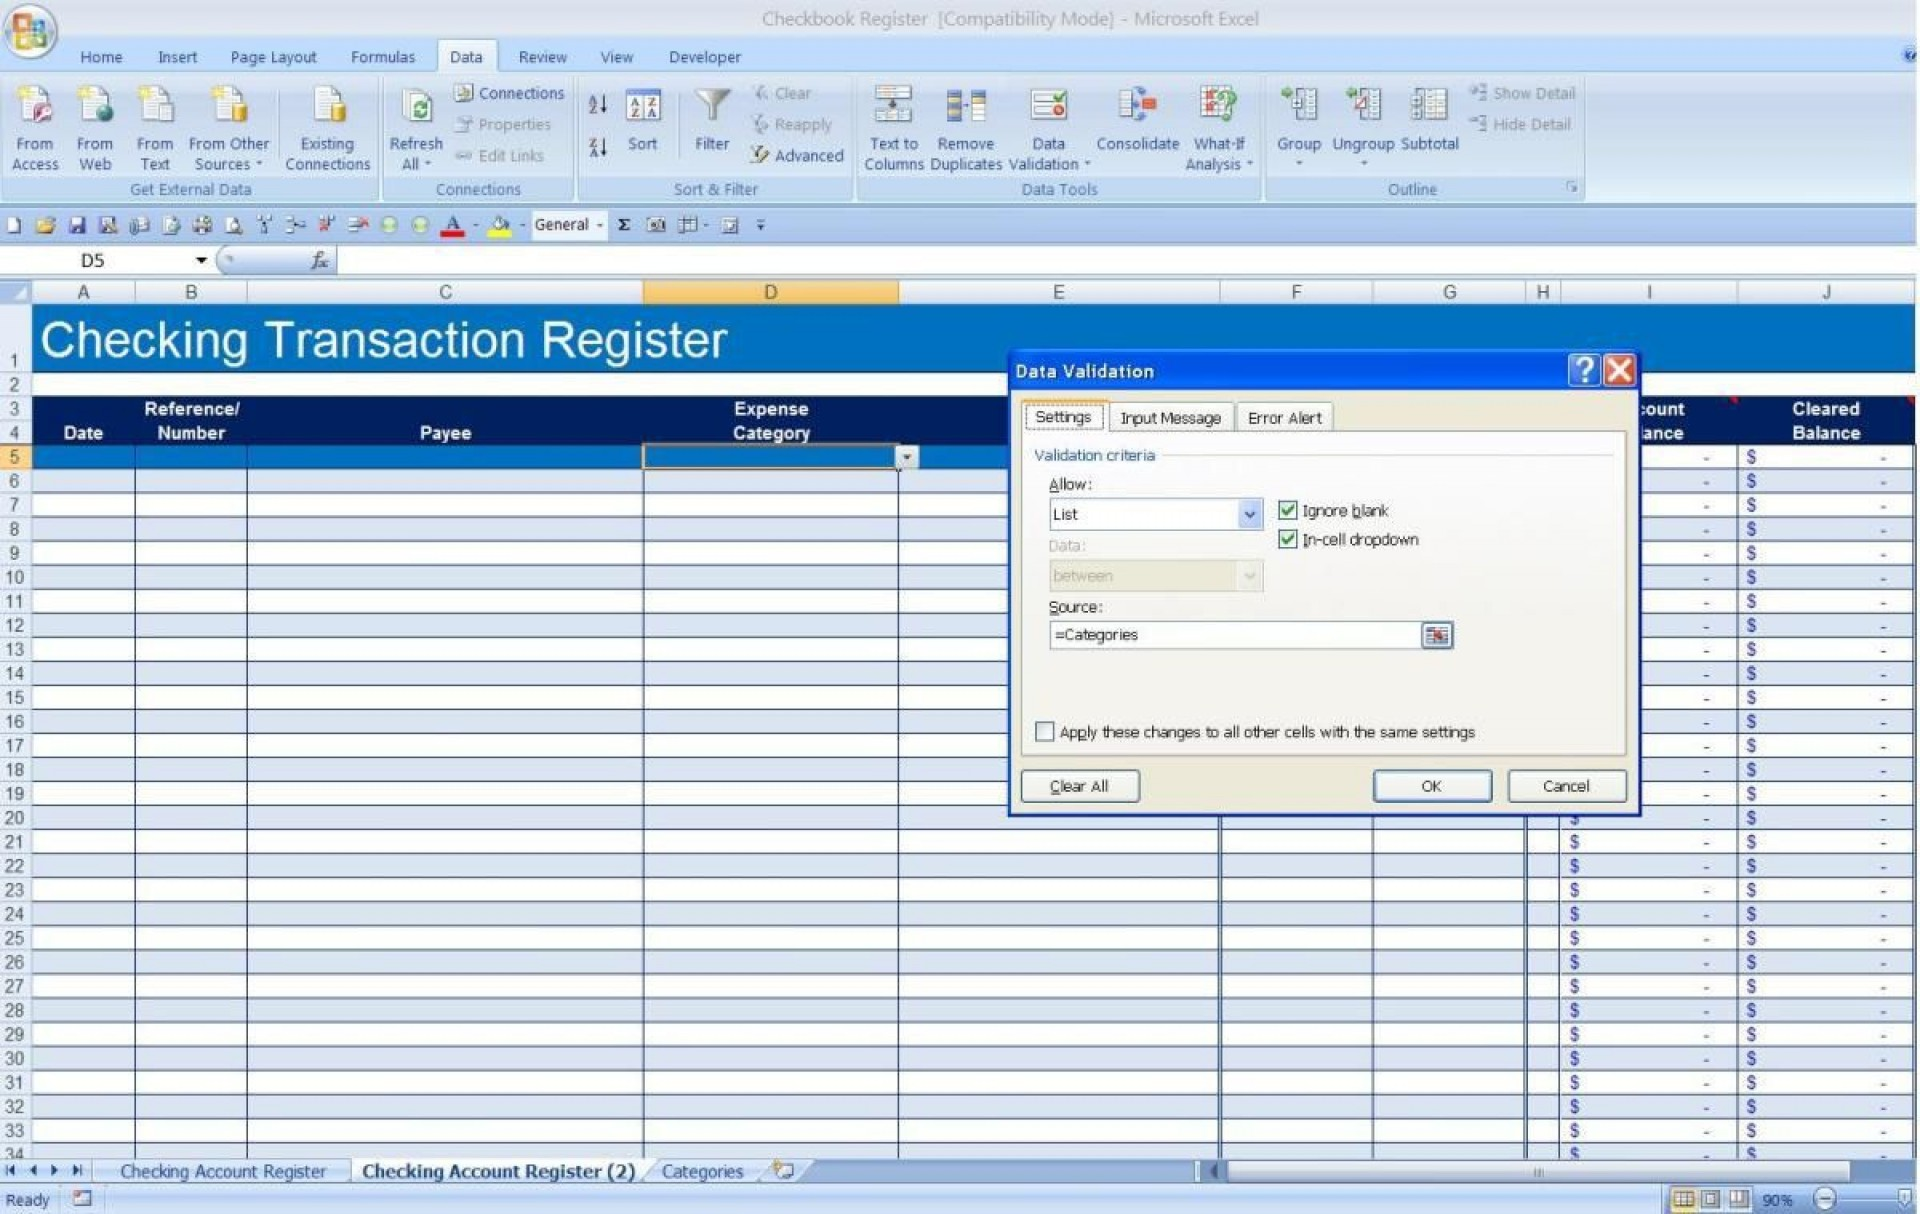 008 Incredible Checkbook Register Template Excel 2013 Highest Quality 1920